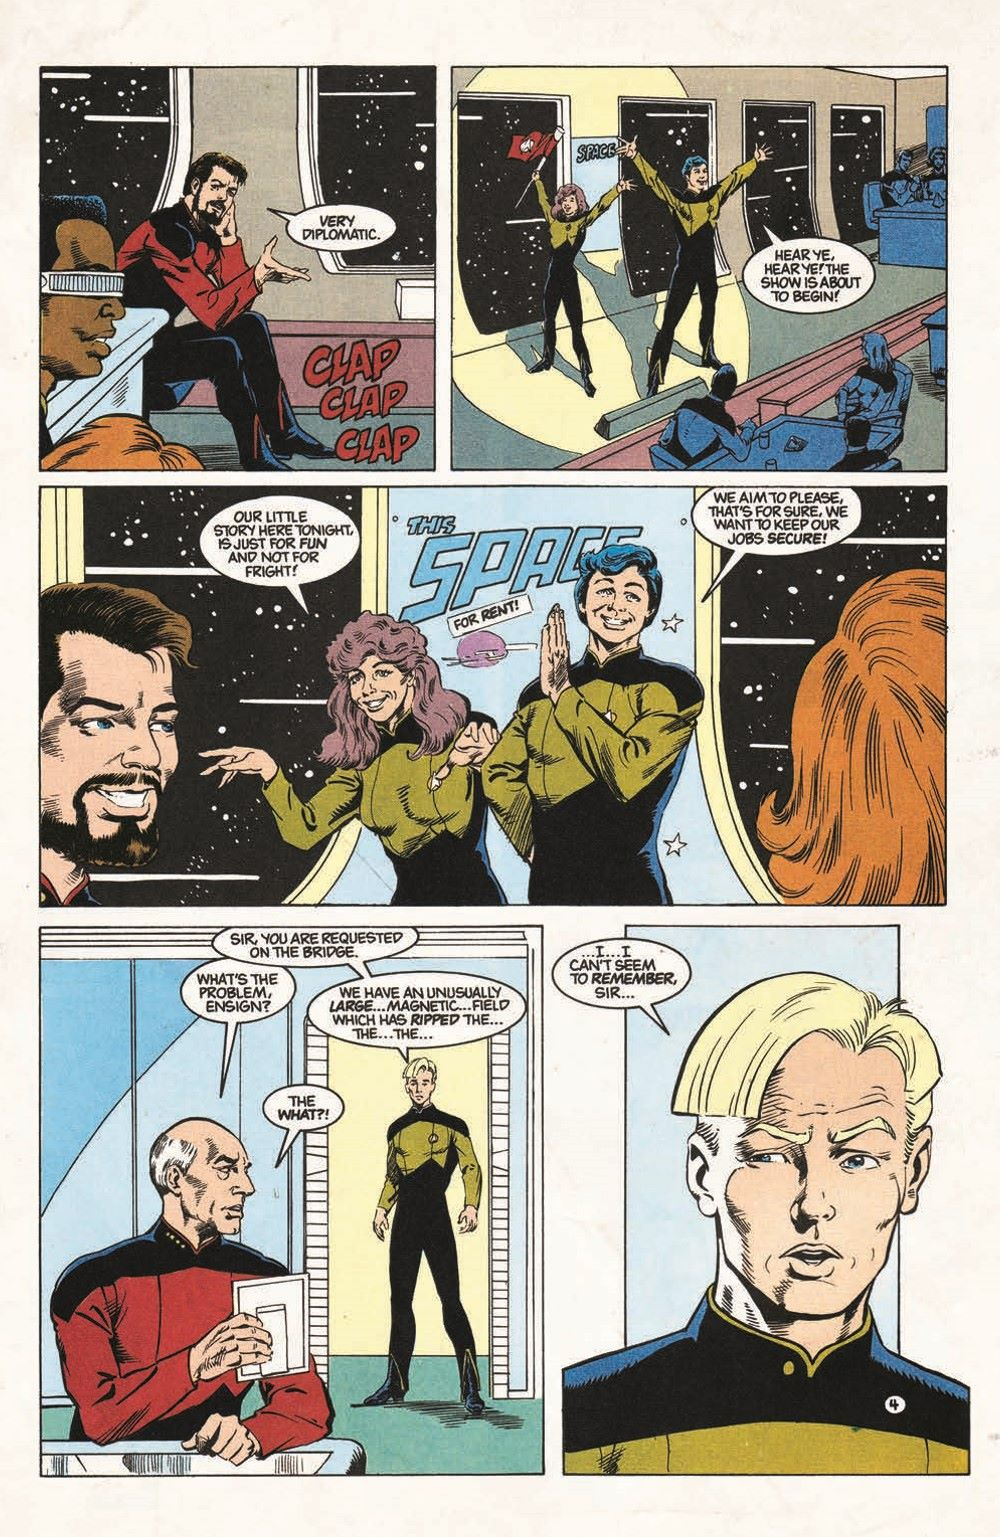 ST_TNG-TheGift-pr-6 ComicList Previews: STAR TREK THE NEXT GENERATION THE GIFT #1